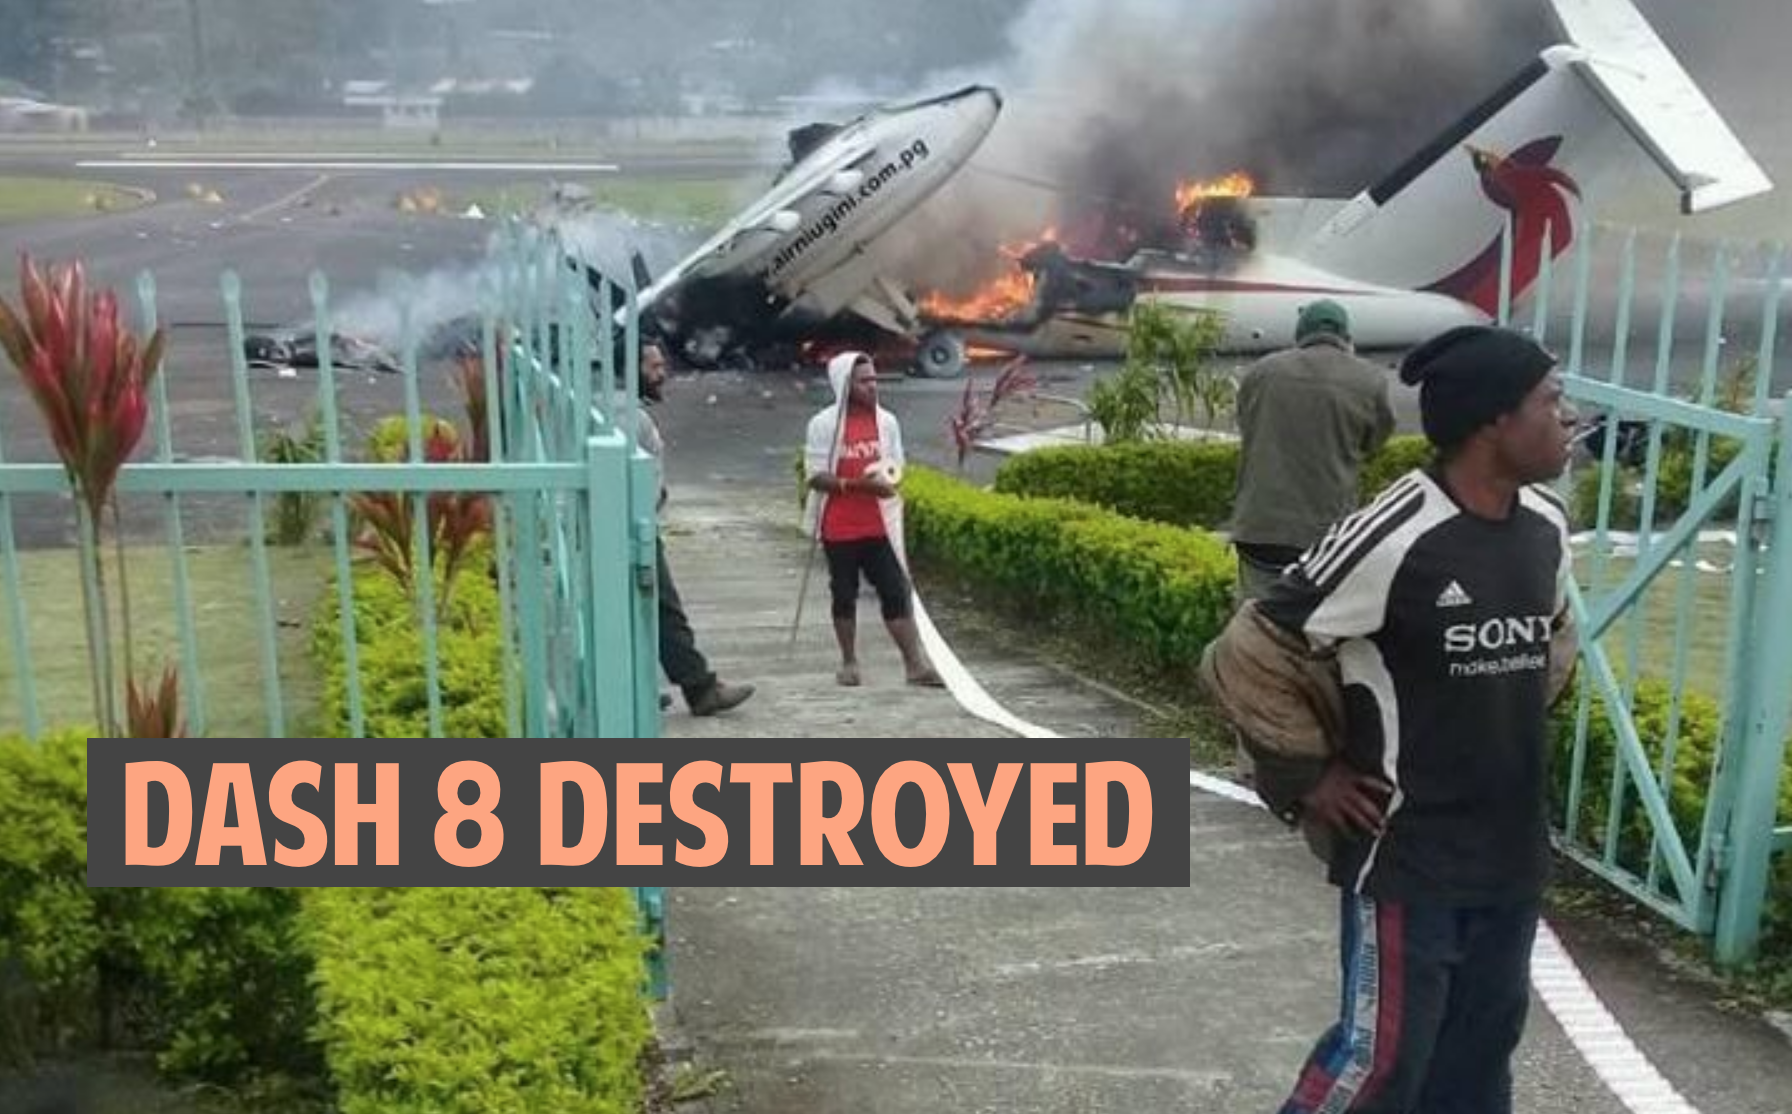 Dash 8 set on fire in Papua New Guinea, airport closed indefinitely